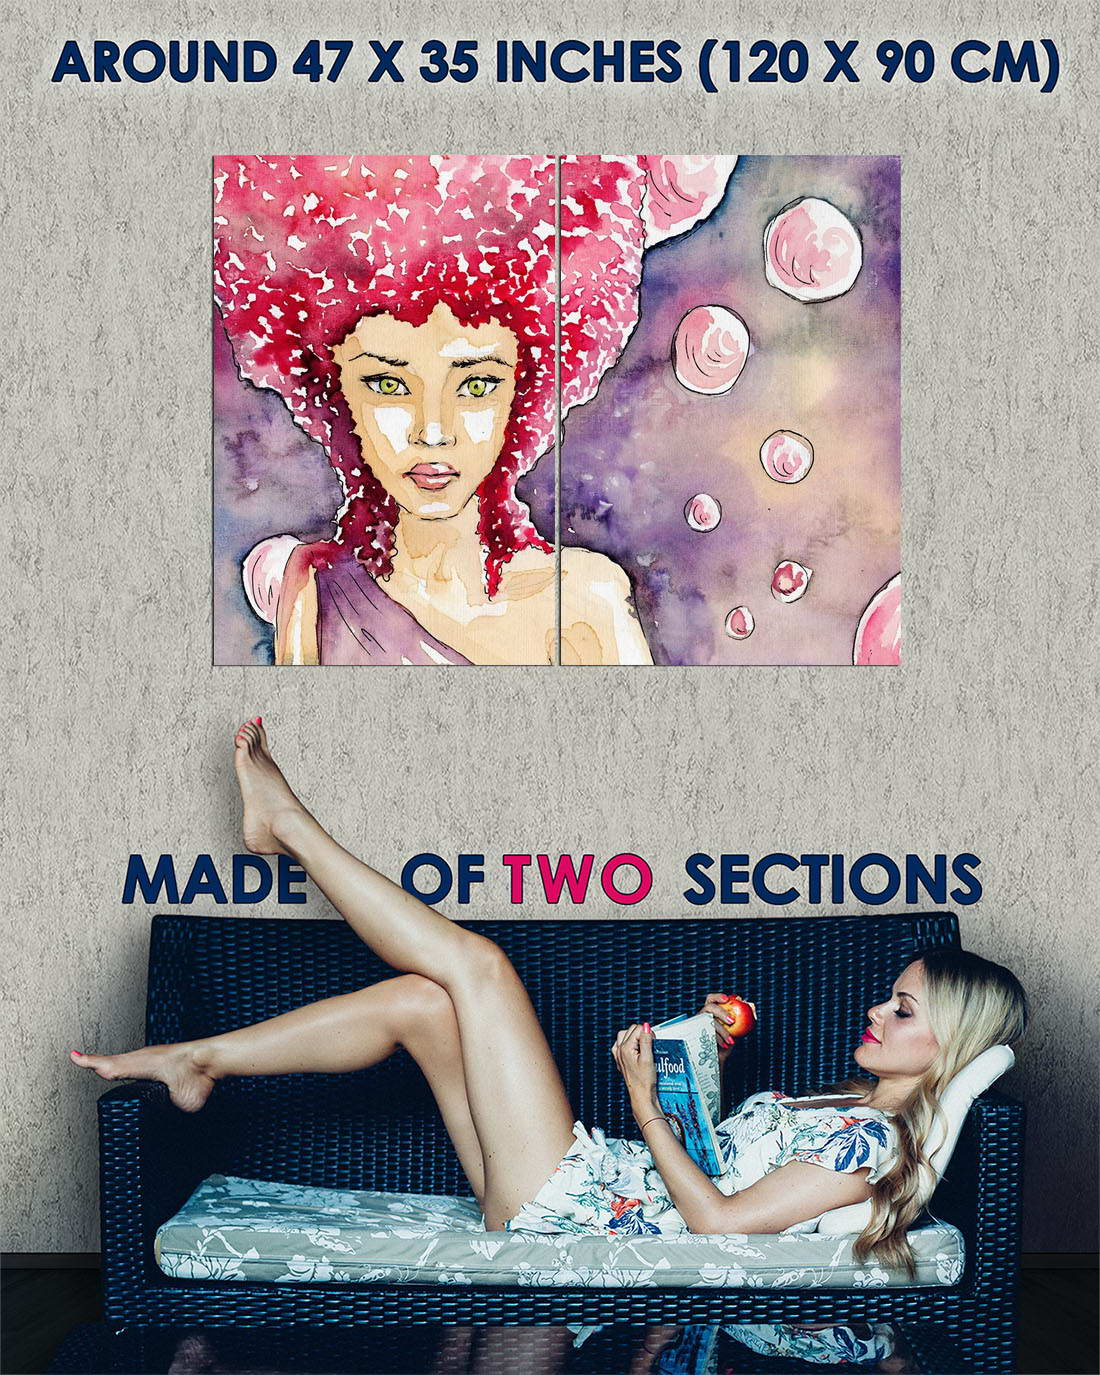 117590 DRAWING DESIGN C OON GIRL GIRL GIRL rosso HAIR BUBBLES Decor WALL PRINT POSTER FR 4a0148